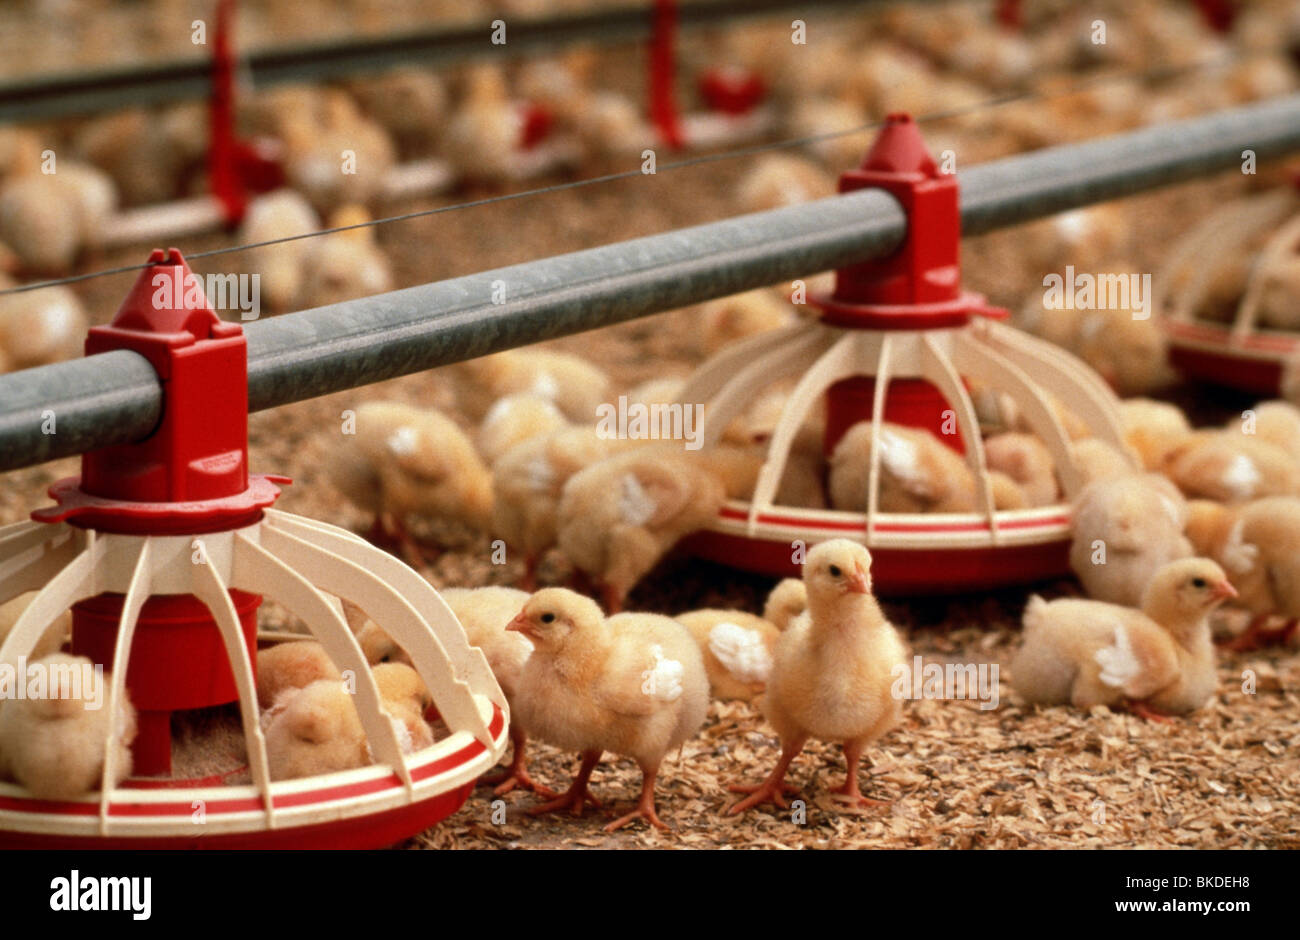 Agriculture industry: Mass production chicken industry - Stock Image